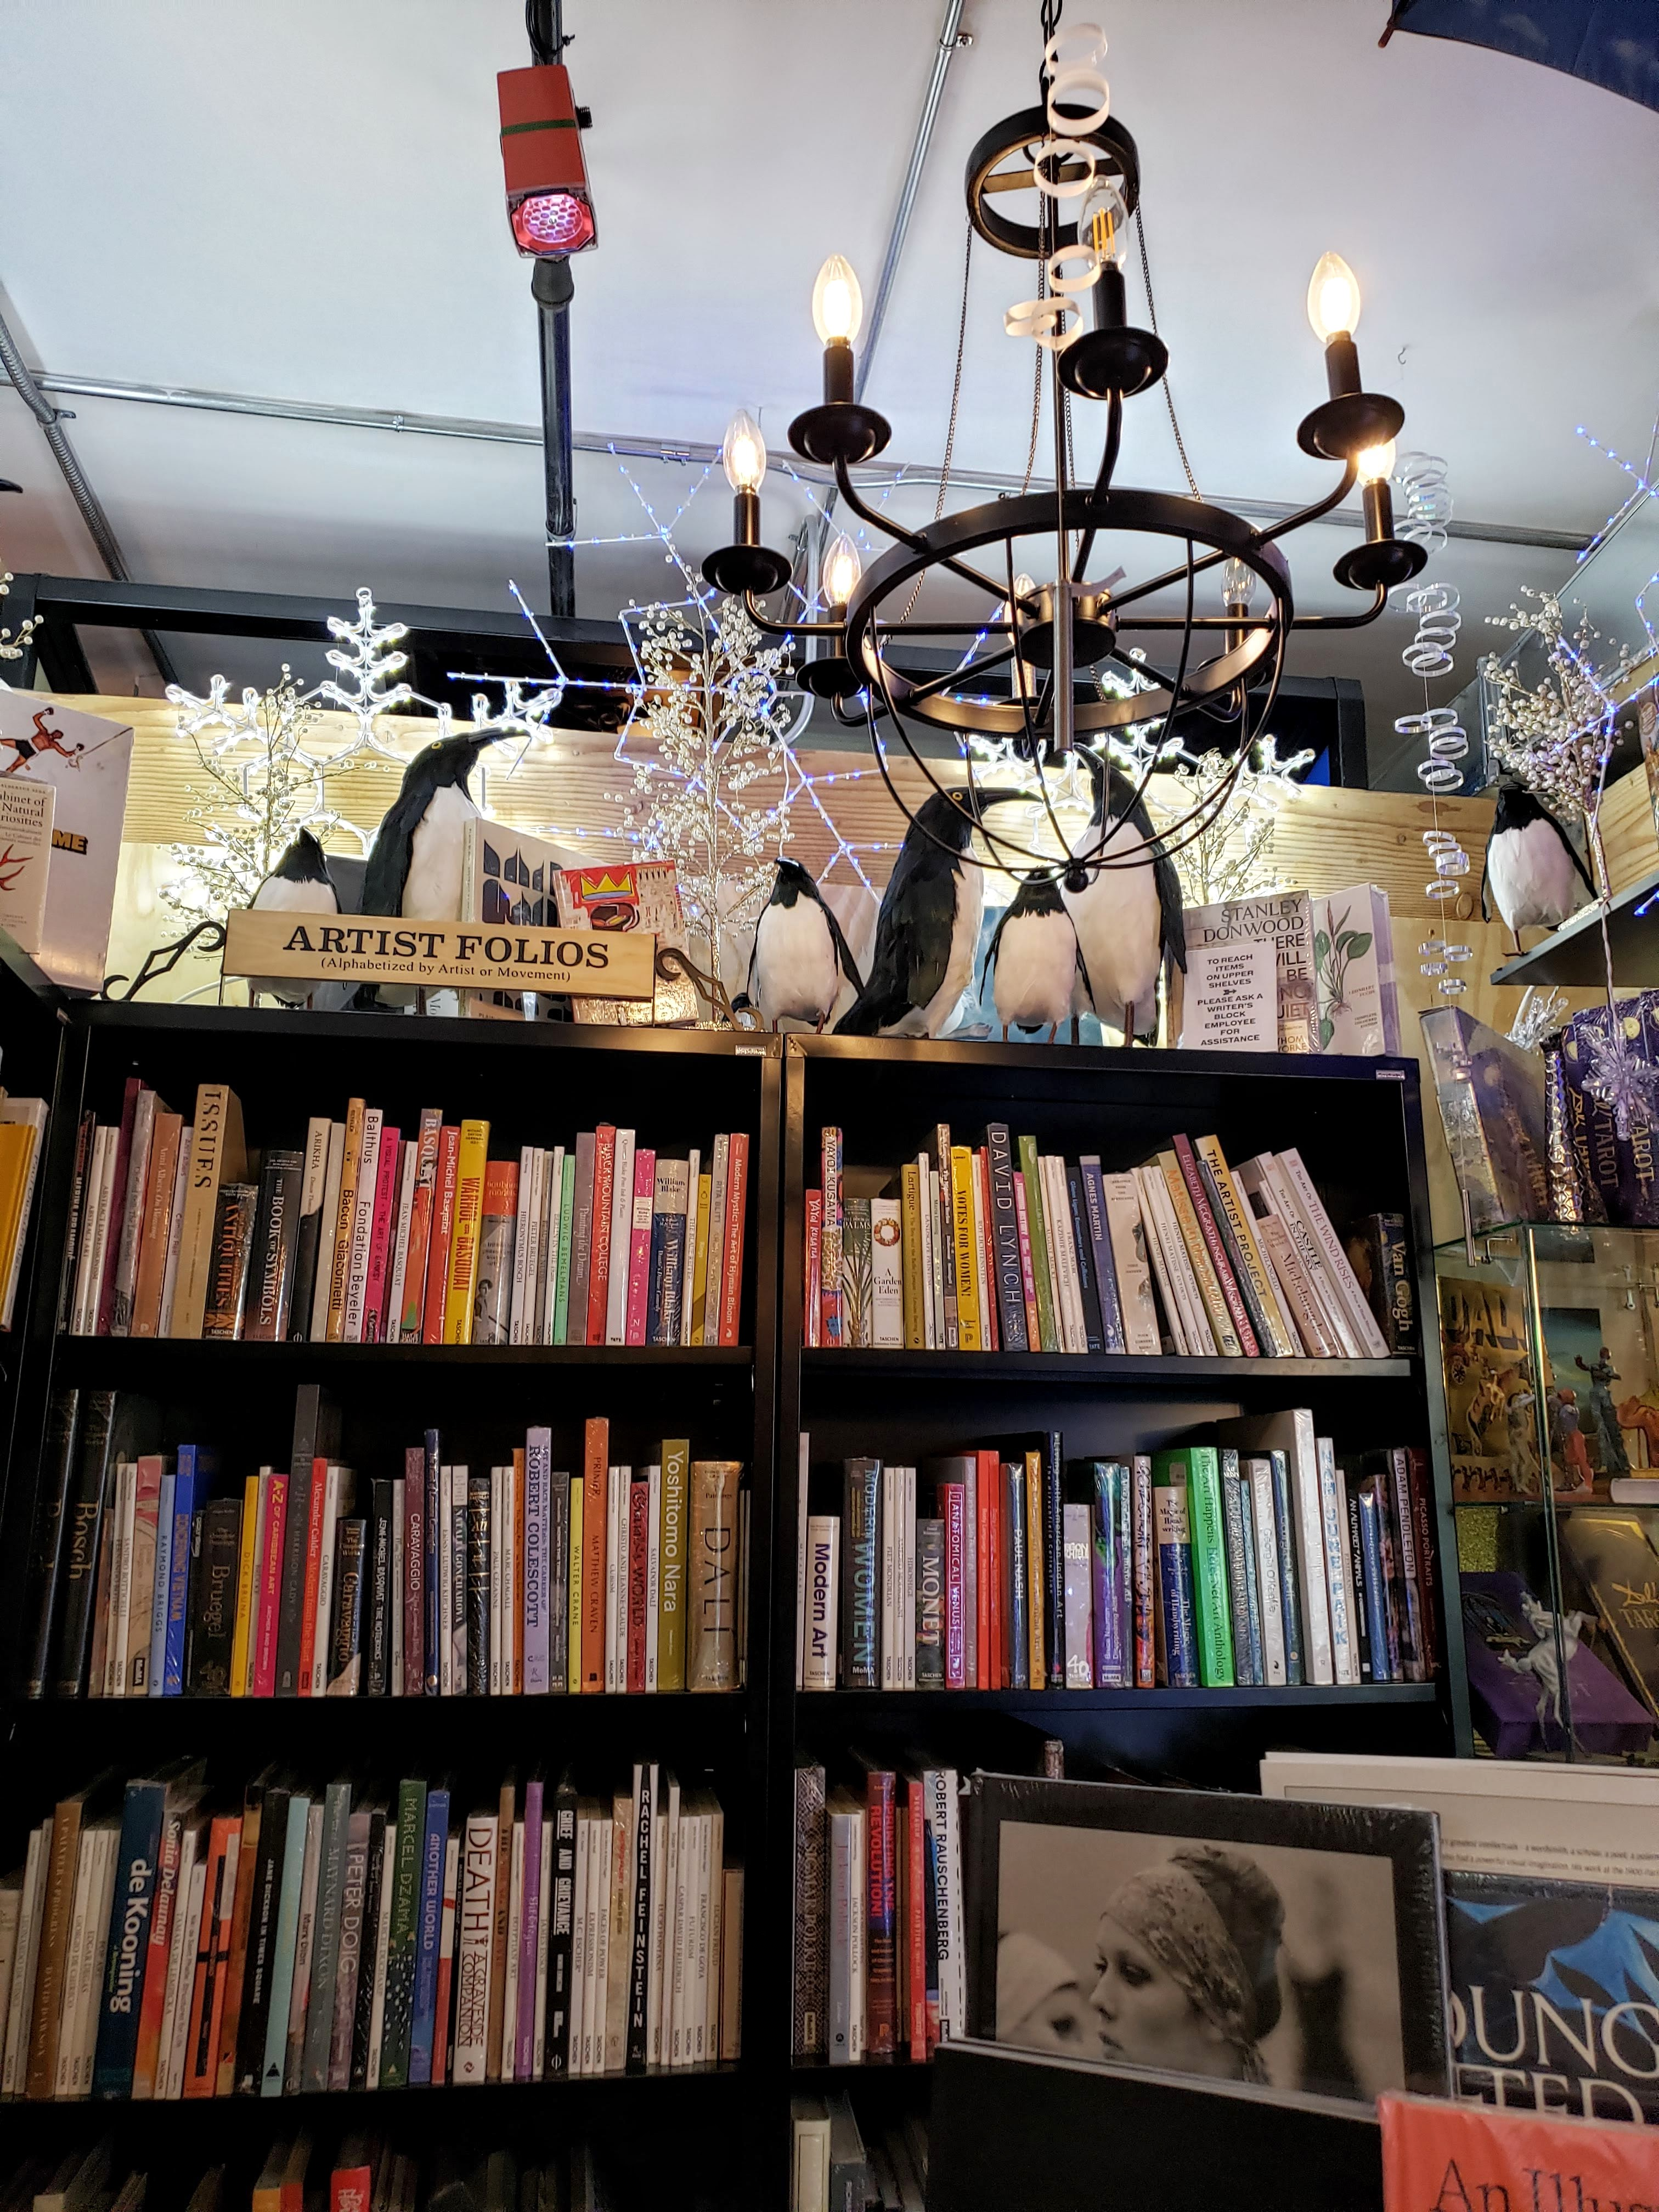 This penguin corner is just one of many of the eclectic corners you'll find at The Writer's Block bookstore in Las Vegas.